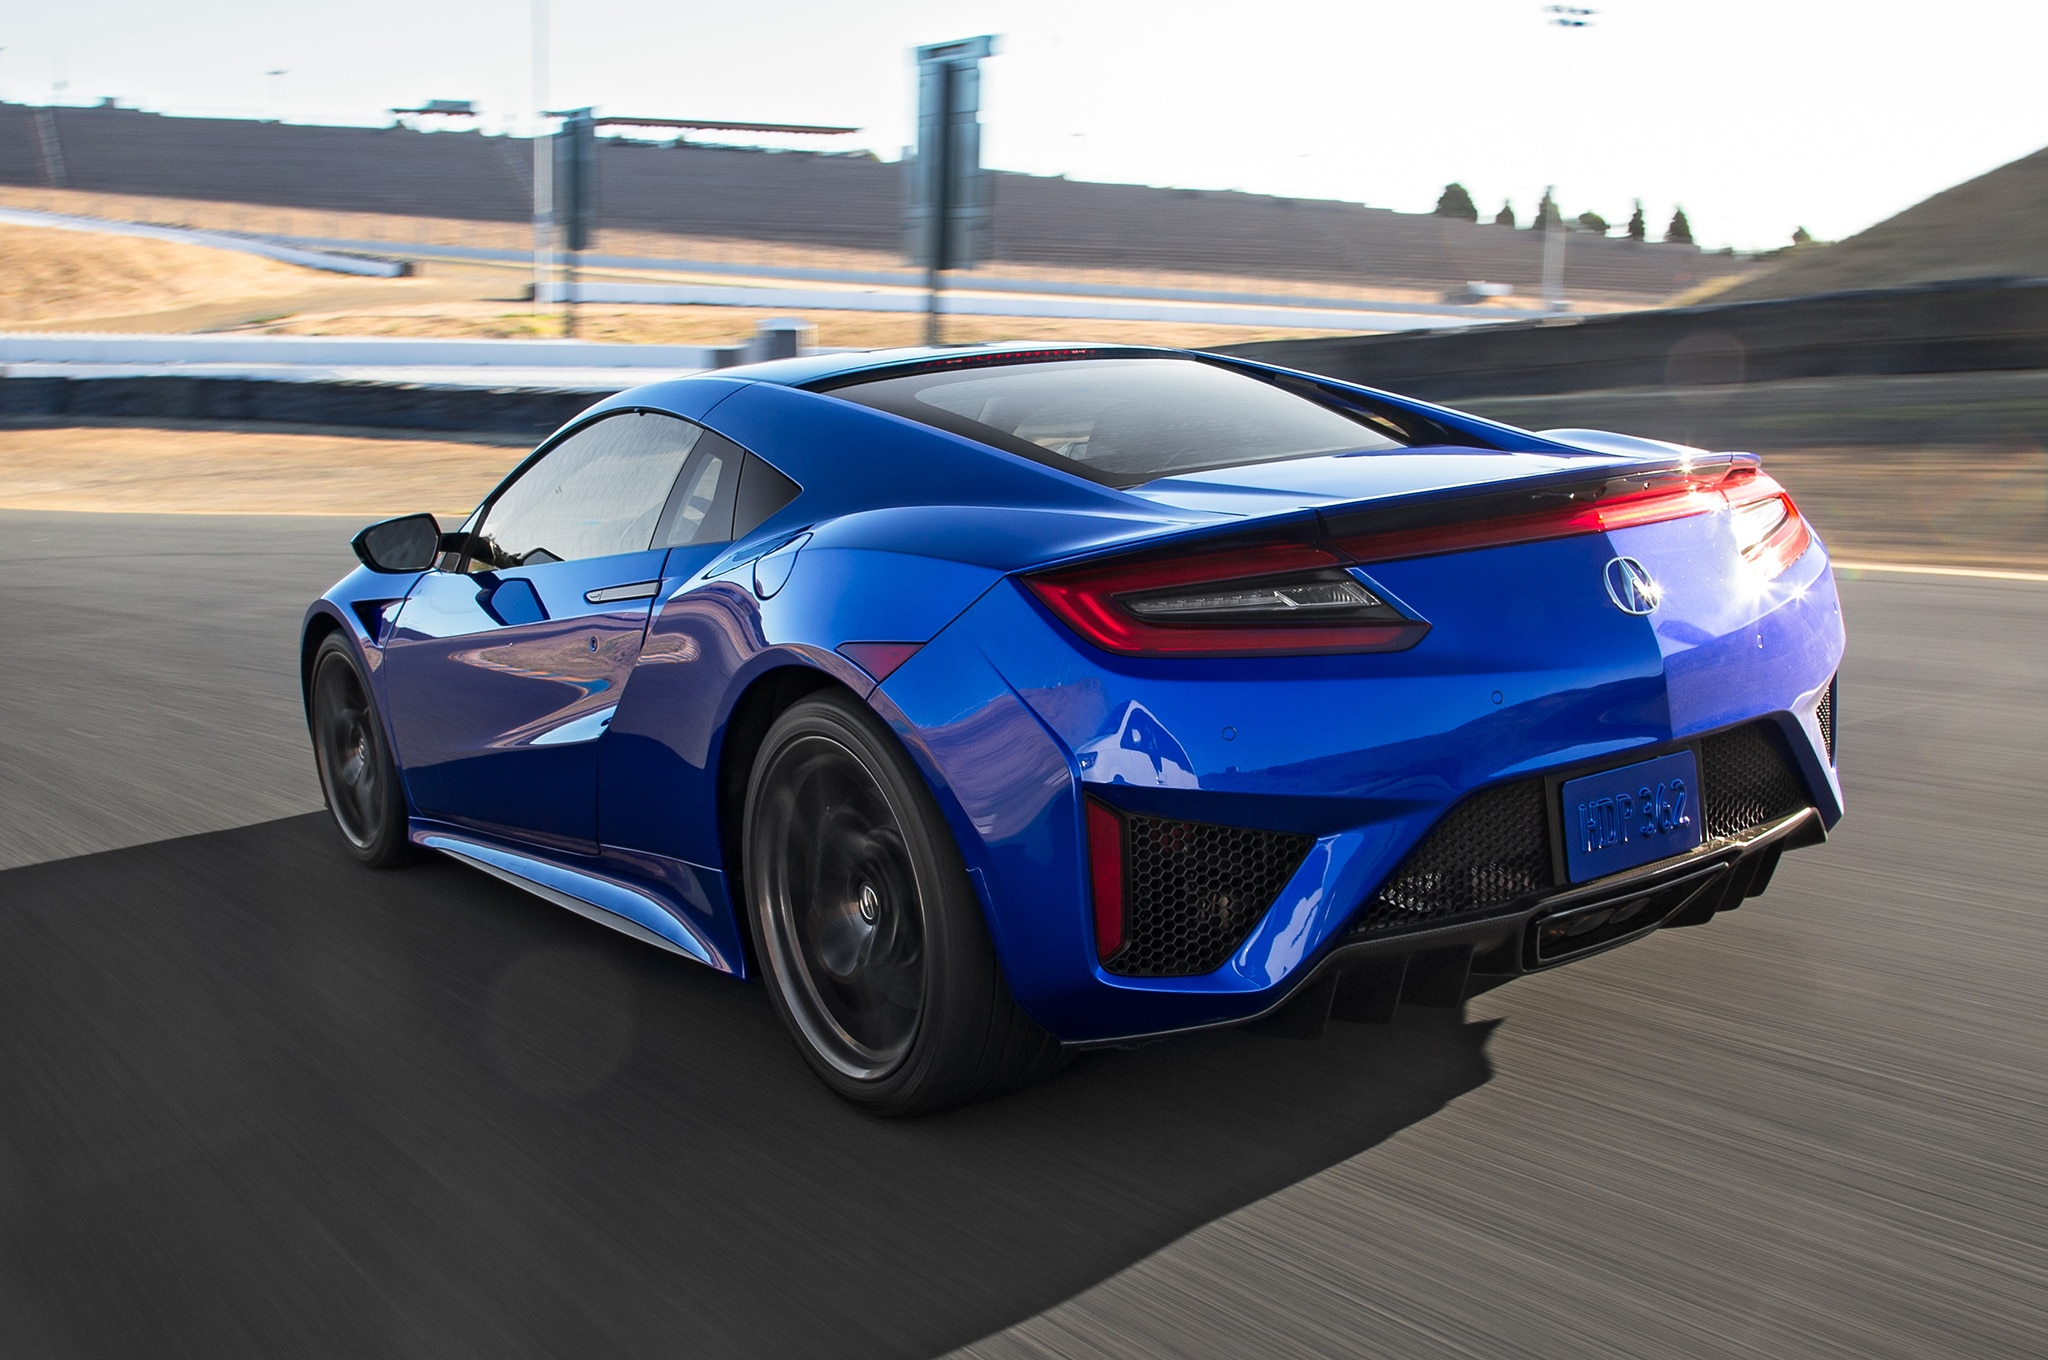 2017 acura nsx first drive roadtest review automobile magazine. Black Bedroom Furniture Sets. Home Design Ideas